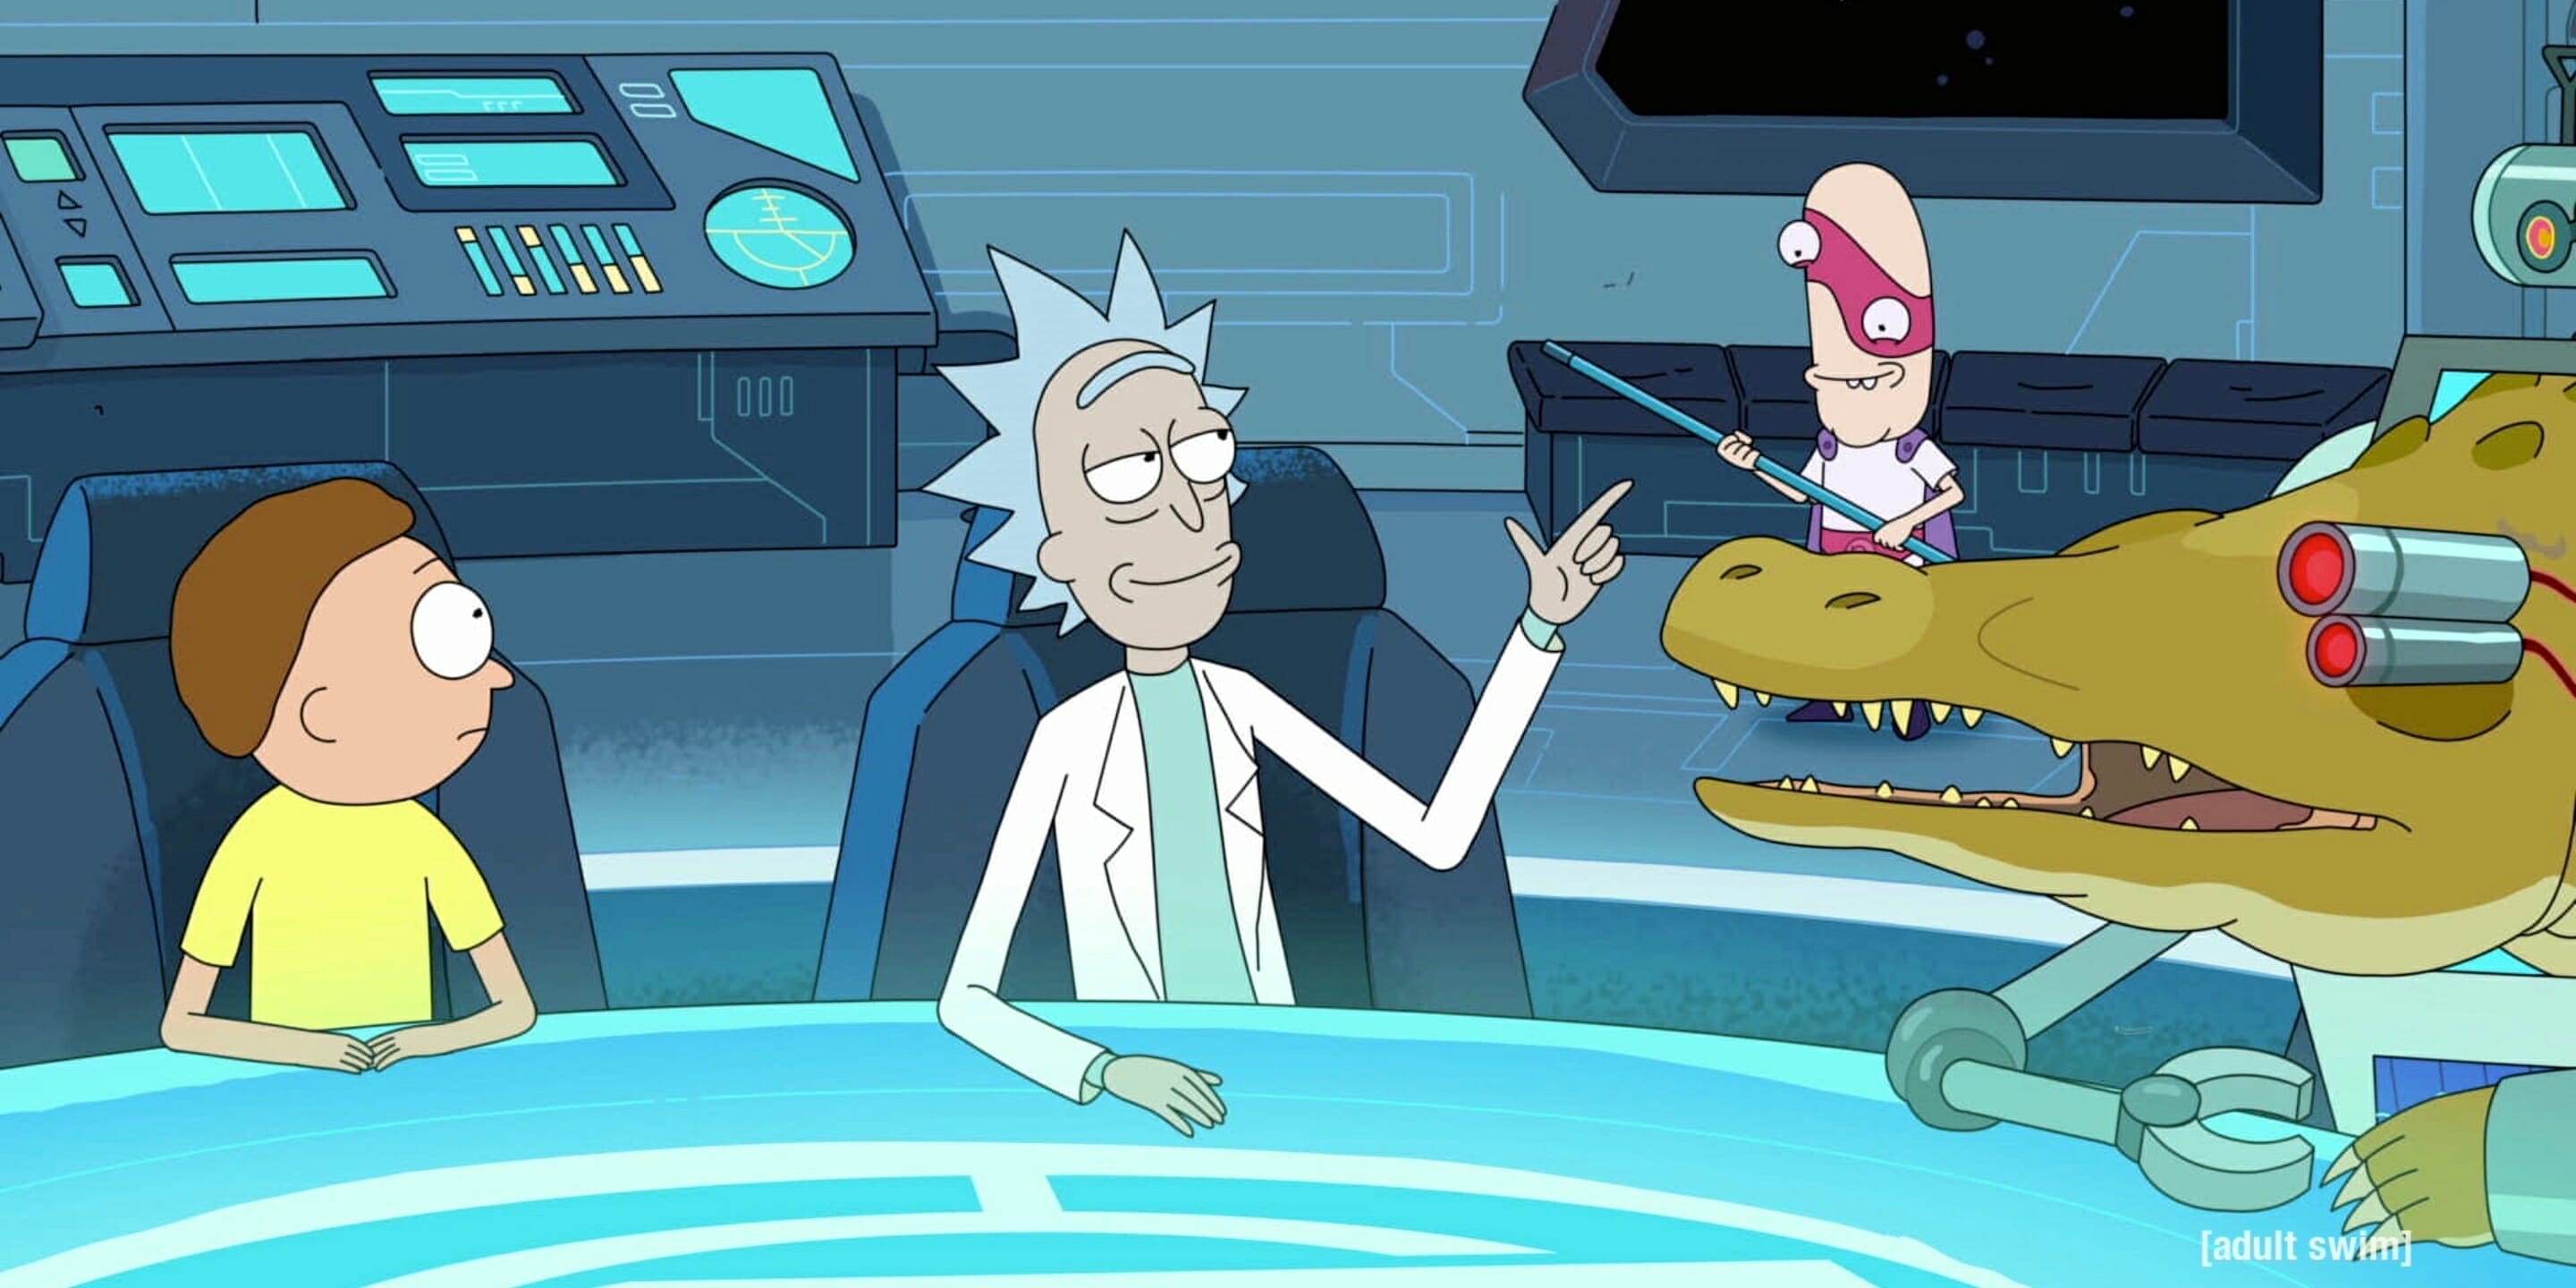 TV Shows Like Rick and Morty: 10 Series to Watch Before Season 4